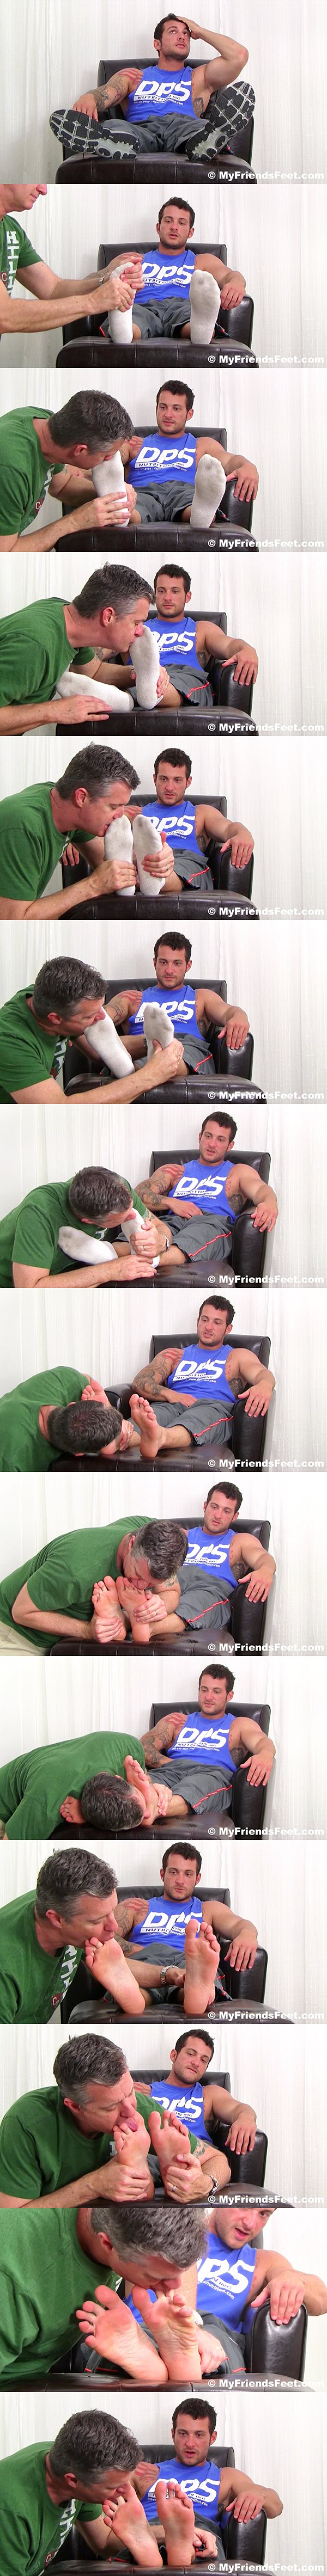 Masculine Marine stud Ned gets his size 10 feet worshiped at Myfriendsfeet 02